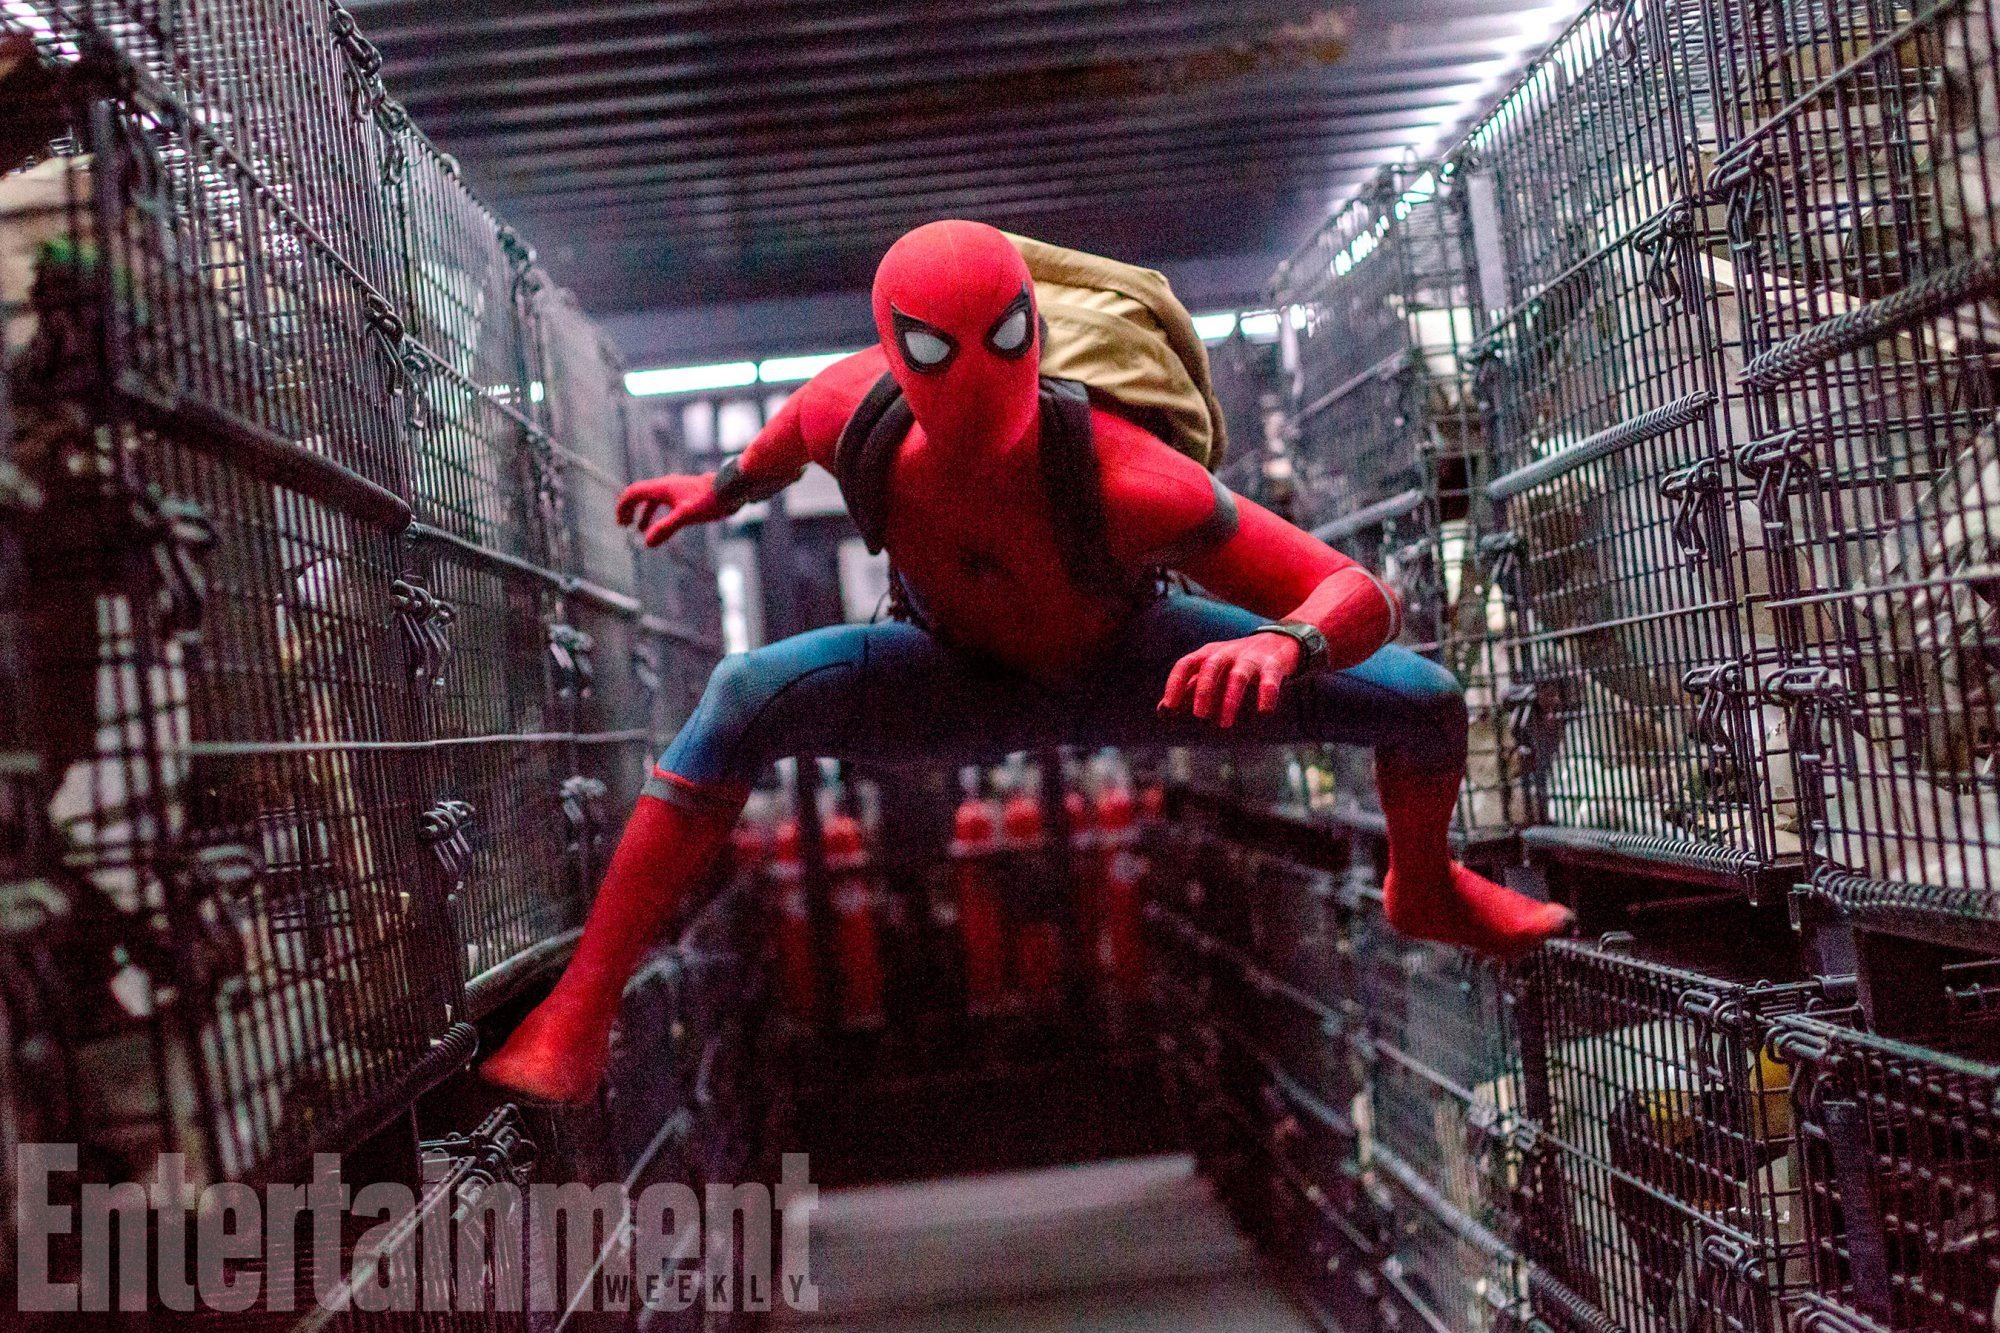 New Spider-Man: Homecoming Photos Revealed